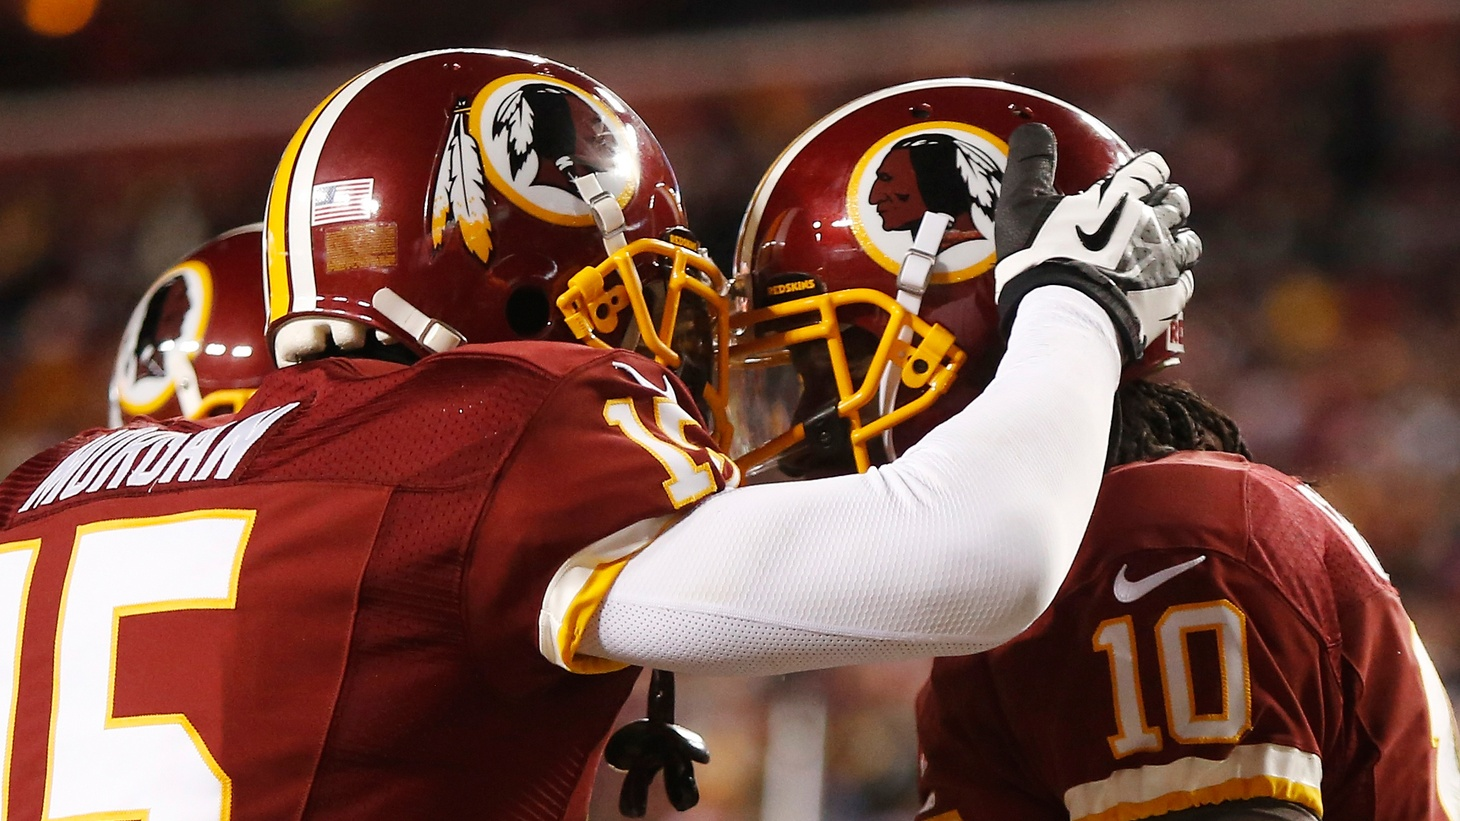 The US Patent Office revokes the Redskins' trademark. GM CEO testifies before Congress on major recalls by the company. We get the history of booze from author Adam Rogers. And, a look at the world of tech, from Amazon smartphones to smell-o-texting.